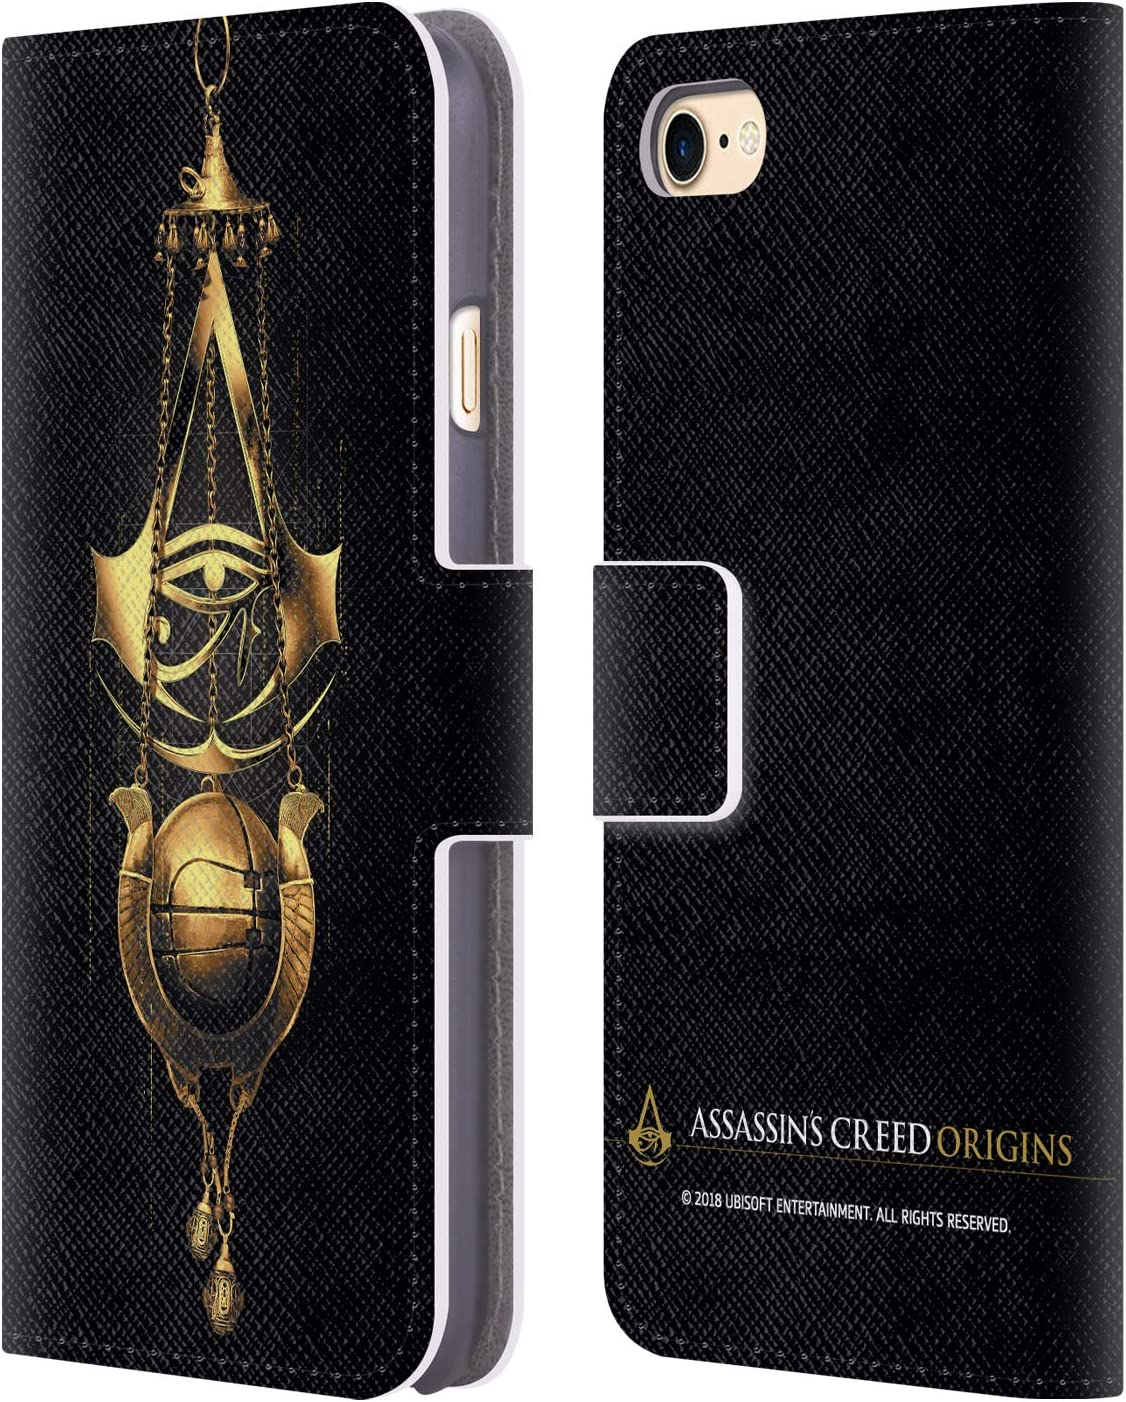 Head Case Designs Officially Licensed Assassin's Creed Piece of Eden Origins Crests Leather Book Wallet Case Cover Compatible with Apple iPhone 7 / iPhone 8 / iPhone SE 2020